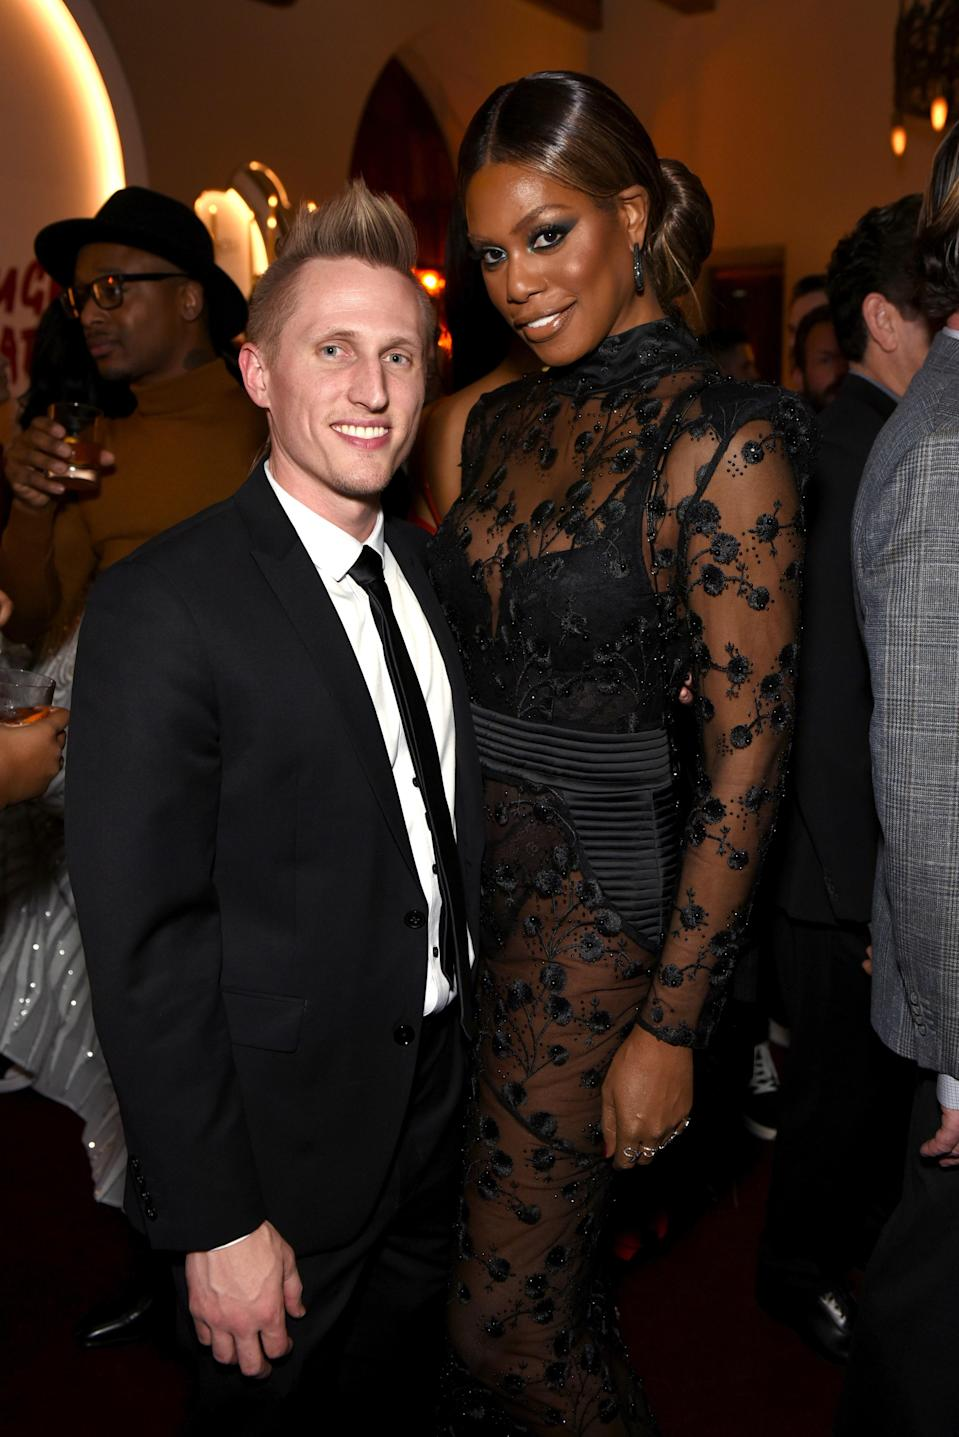 """Laverne Cox announced her split from boyfriend Kyle Draper in June in an emotional message on Instagram. """"After much soul searching and tears from both of us, we have decided it's time for us to go our separate ways,"""" the <em>Orange Is the New Black</em> star <a href=""""https://www.instagram.com/p/BzIMlkqgkQQ/?hl=en"""" rel=""""nofollow noopener"""" target=""""_blank"""" data-ylk=""""slk:wrote"""" class=""""link rapid-noclick-resp"""">wrote</a> on June 25. """"We decided we should make a public statement since our relationship was public in ways neither of us anticipated."""""""